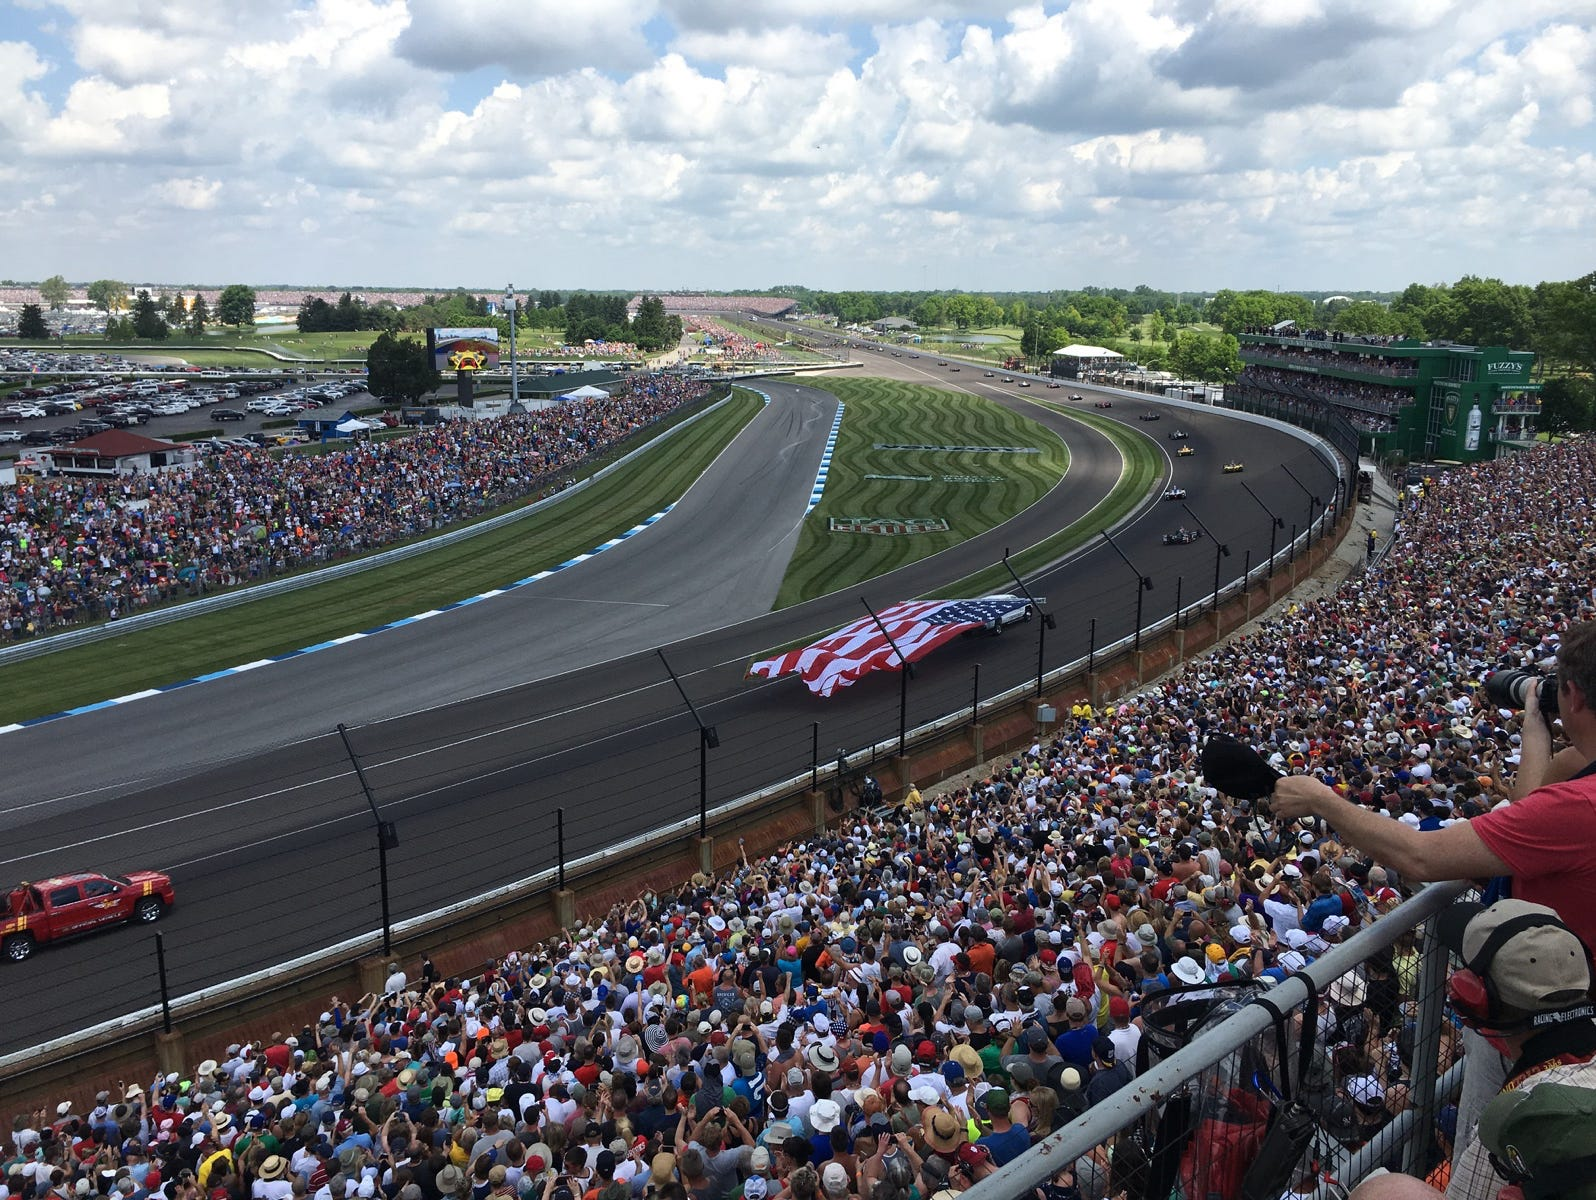 The view from longtime Indy 500 fan John Skinner's seat high up in Turn 2.